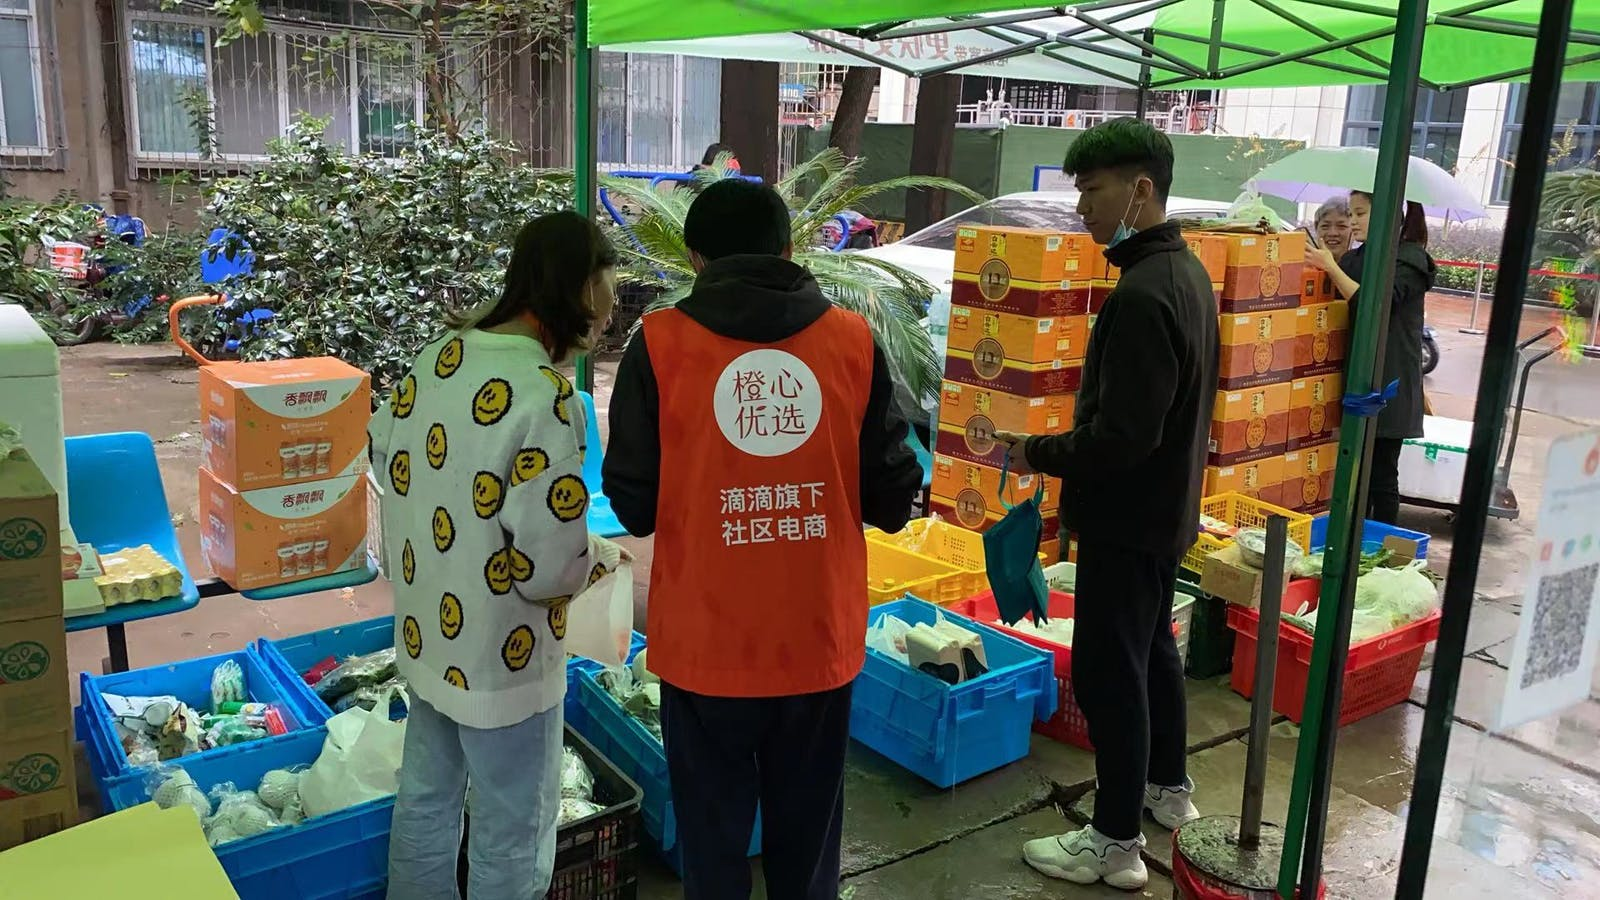 Groceries being distributed from a local shop working with Didi Chuxing. Photo provided by Didi Chuxing.